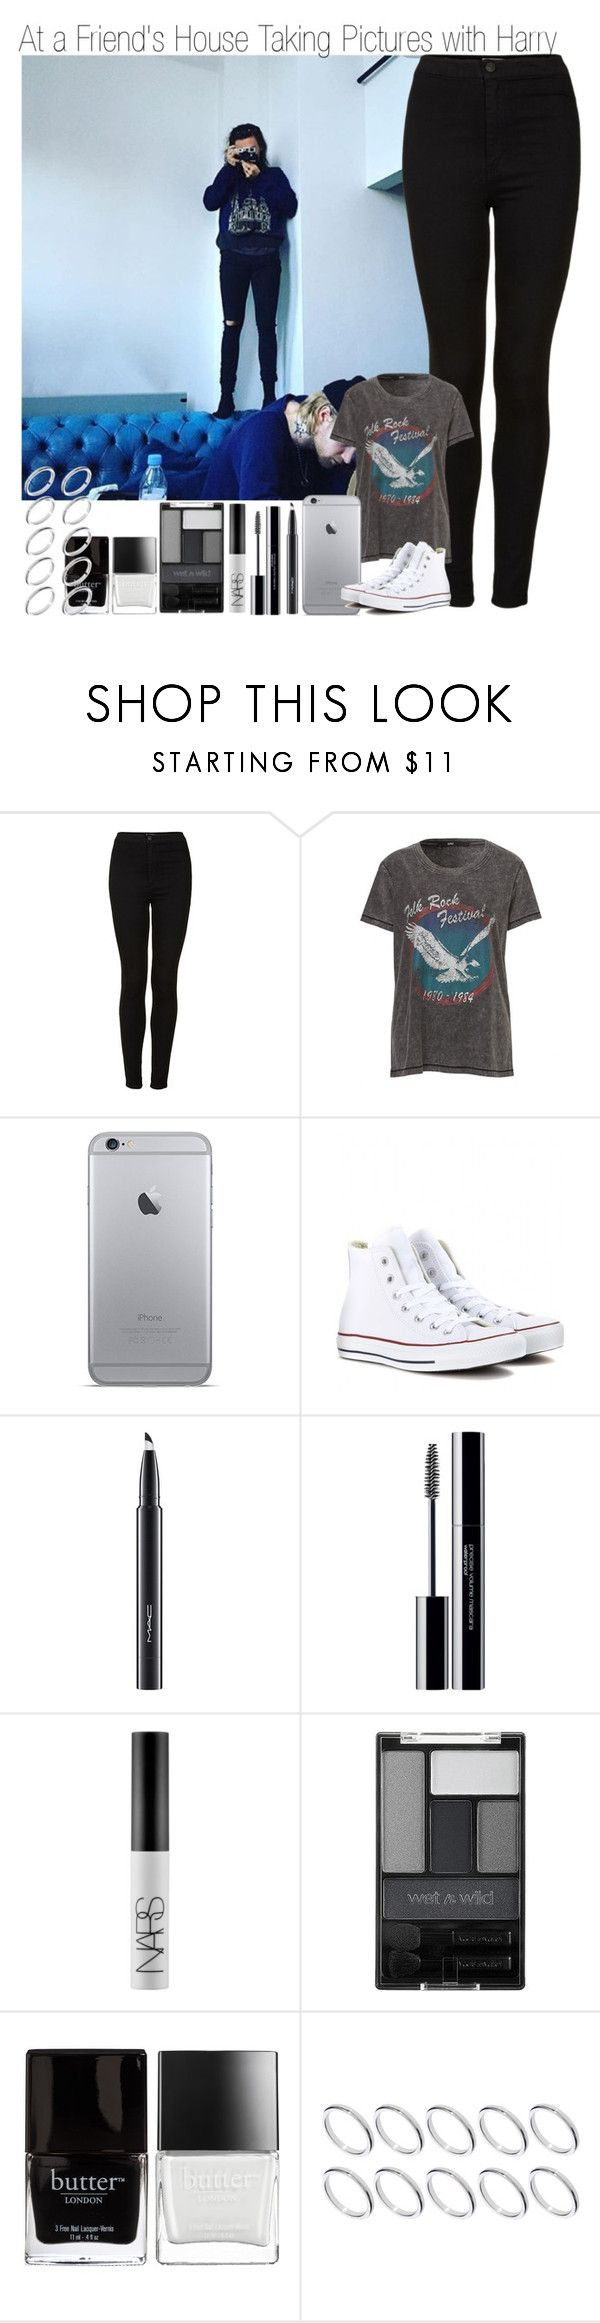 """At a Friend's House Taking Pictures with Harry"" by elise-22 ❤ liked on Polyvore featuring Topshop, Converse, MAC Cosmetics, shu uemura, NARS Cosmetics, Wet n Wild, Butter London and ASOS"